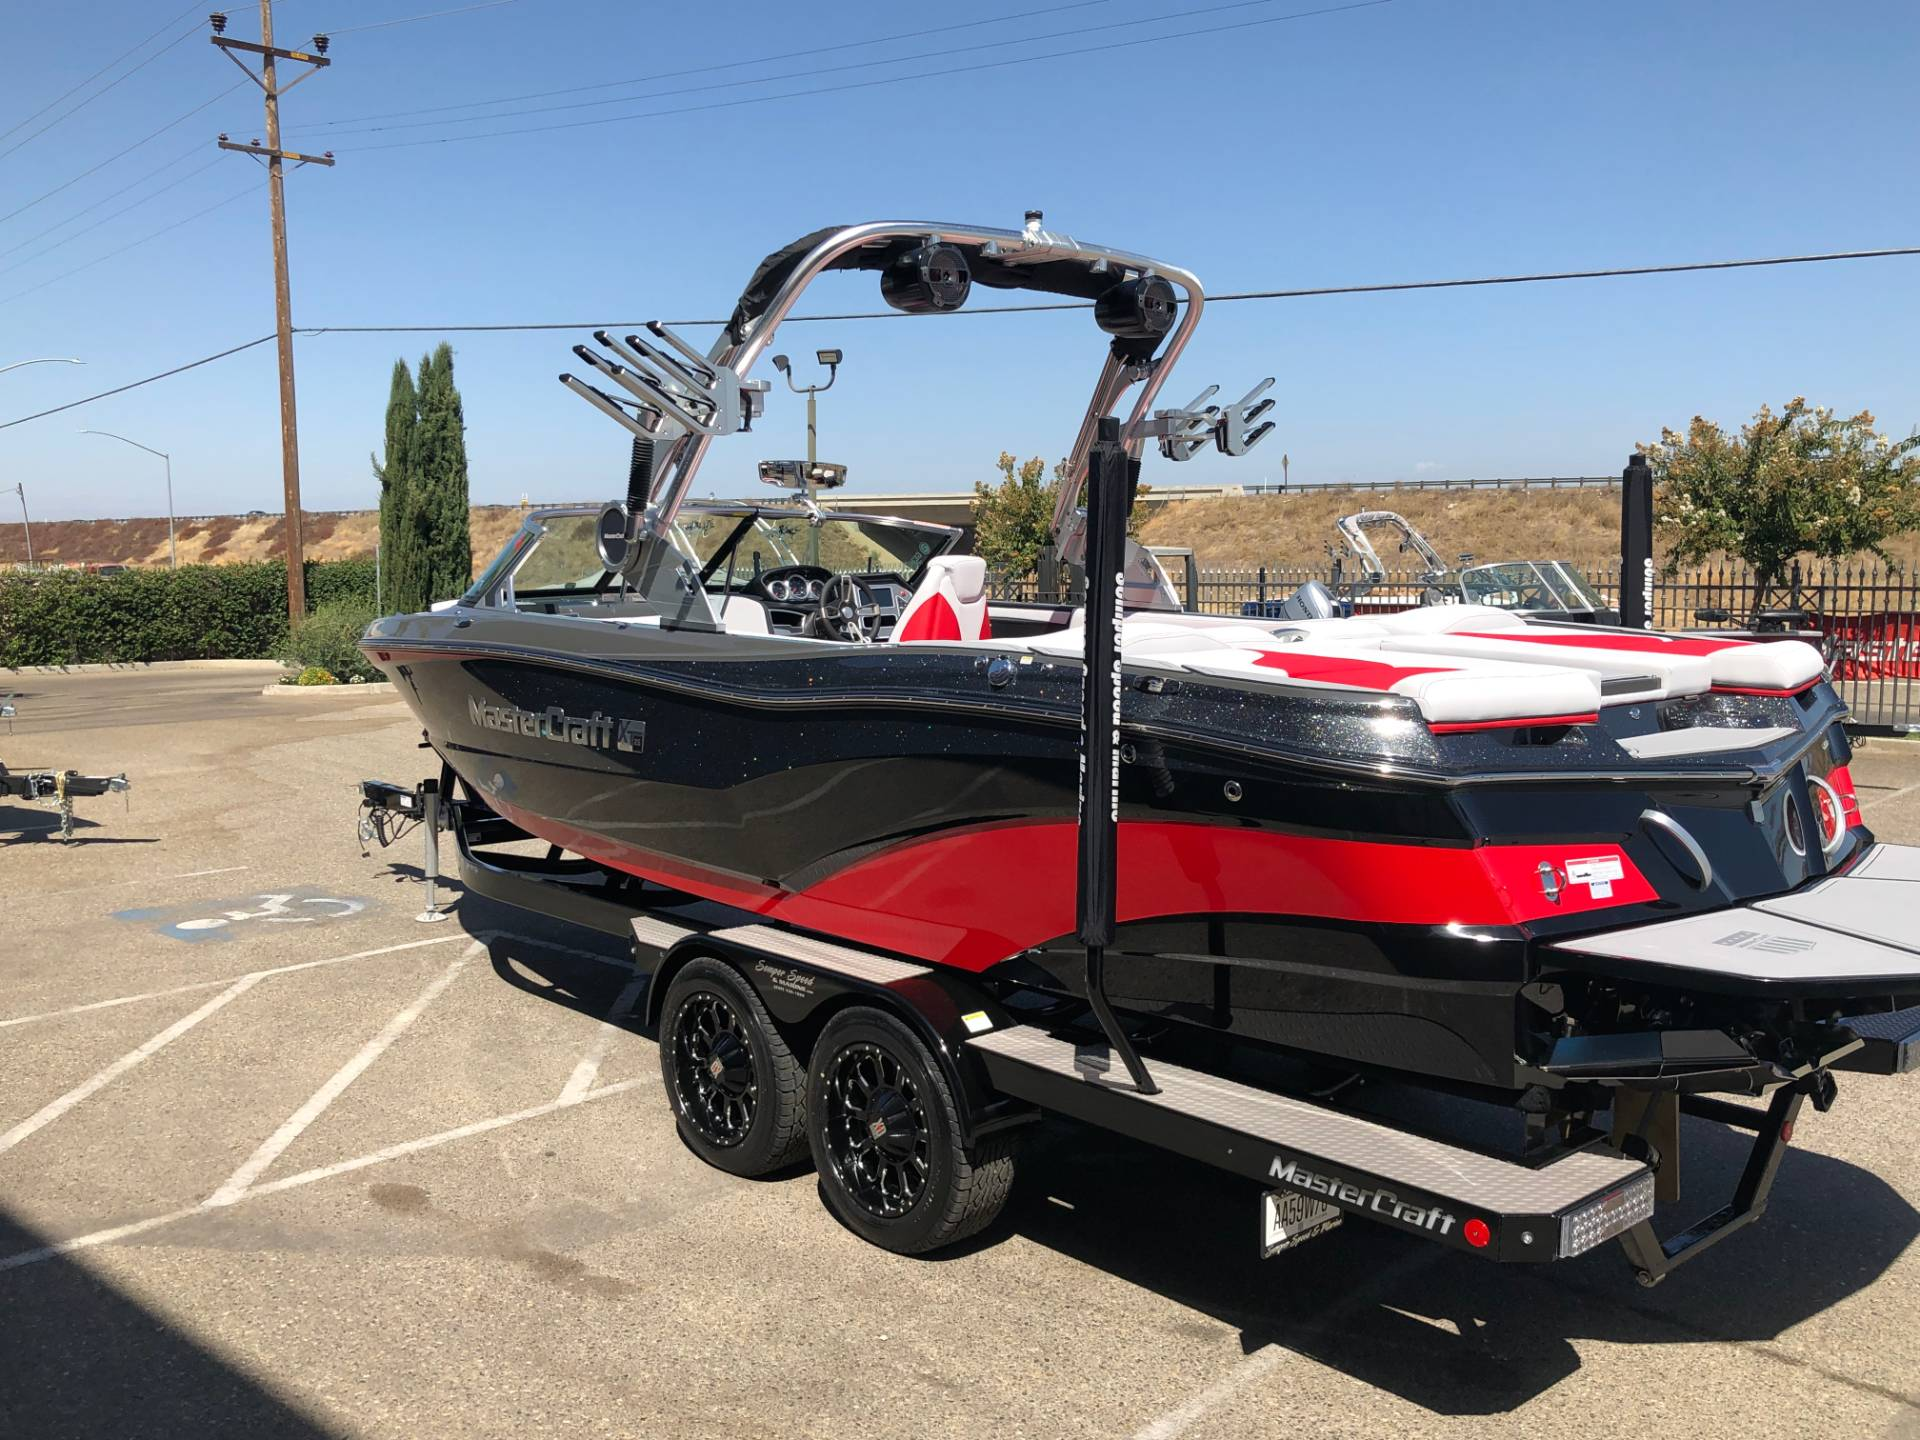 2020 Mastercraft XT25 in Madera, California - Photo 5